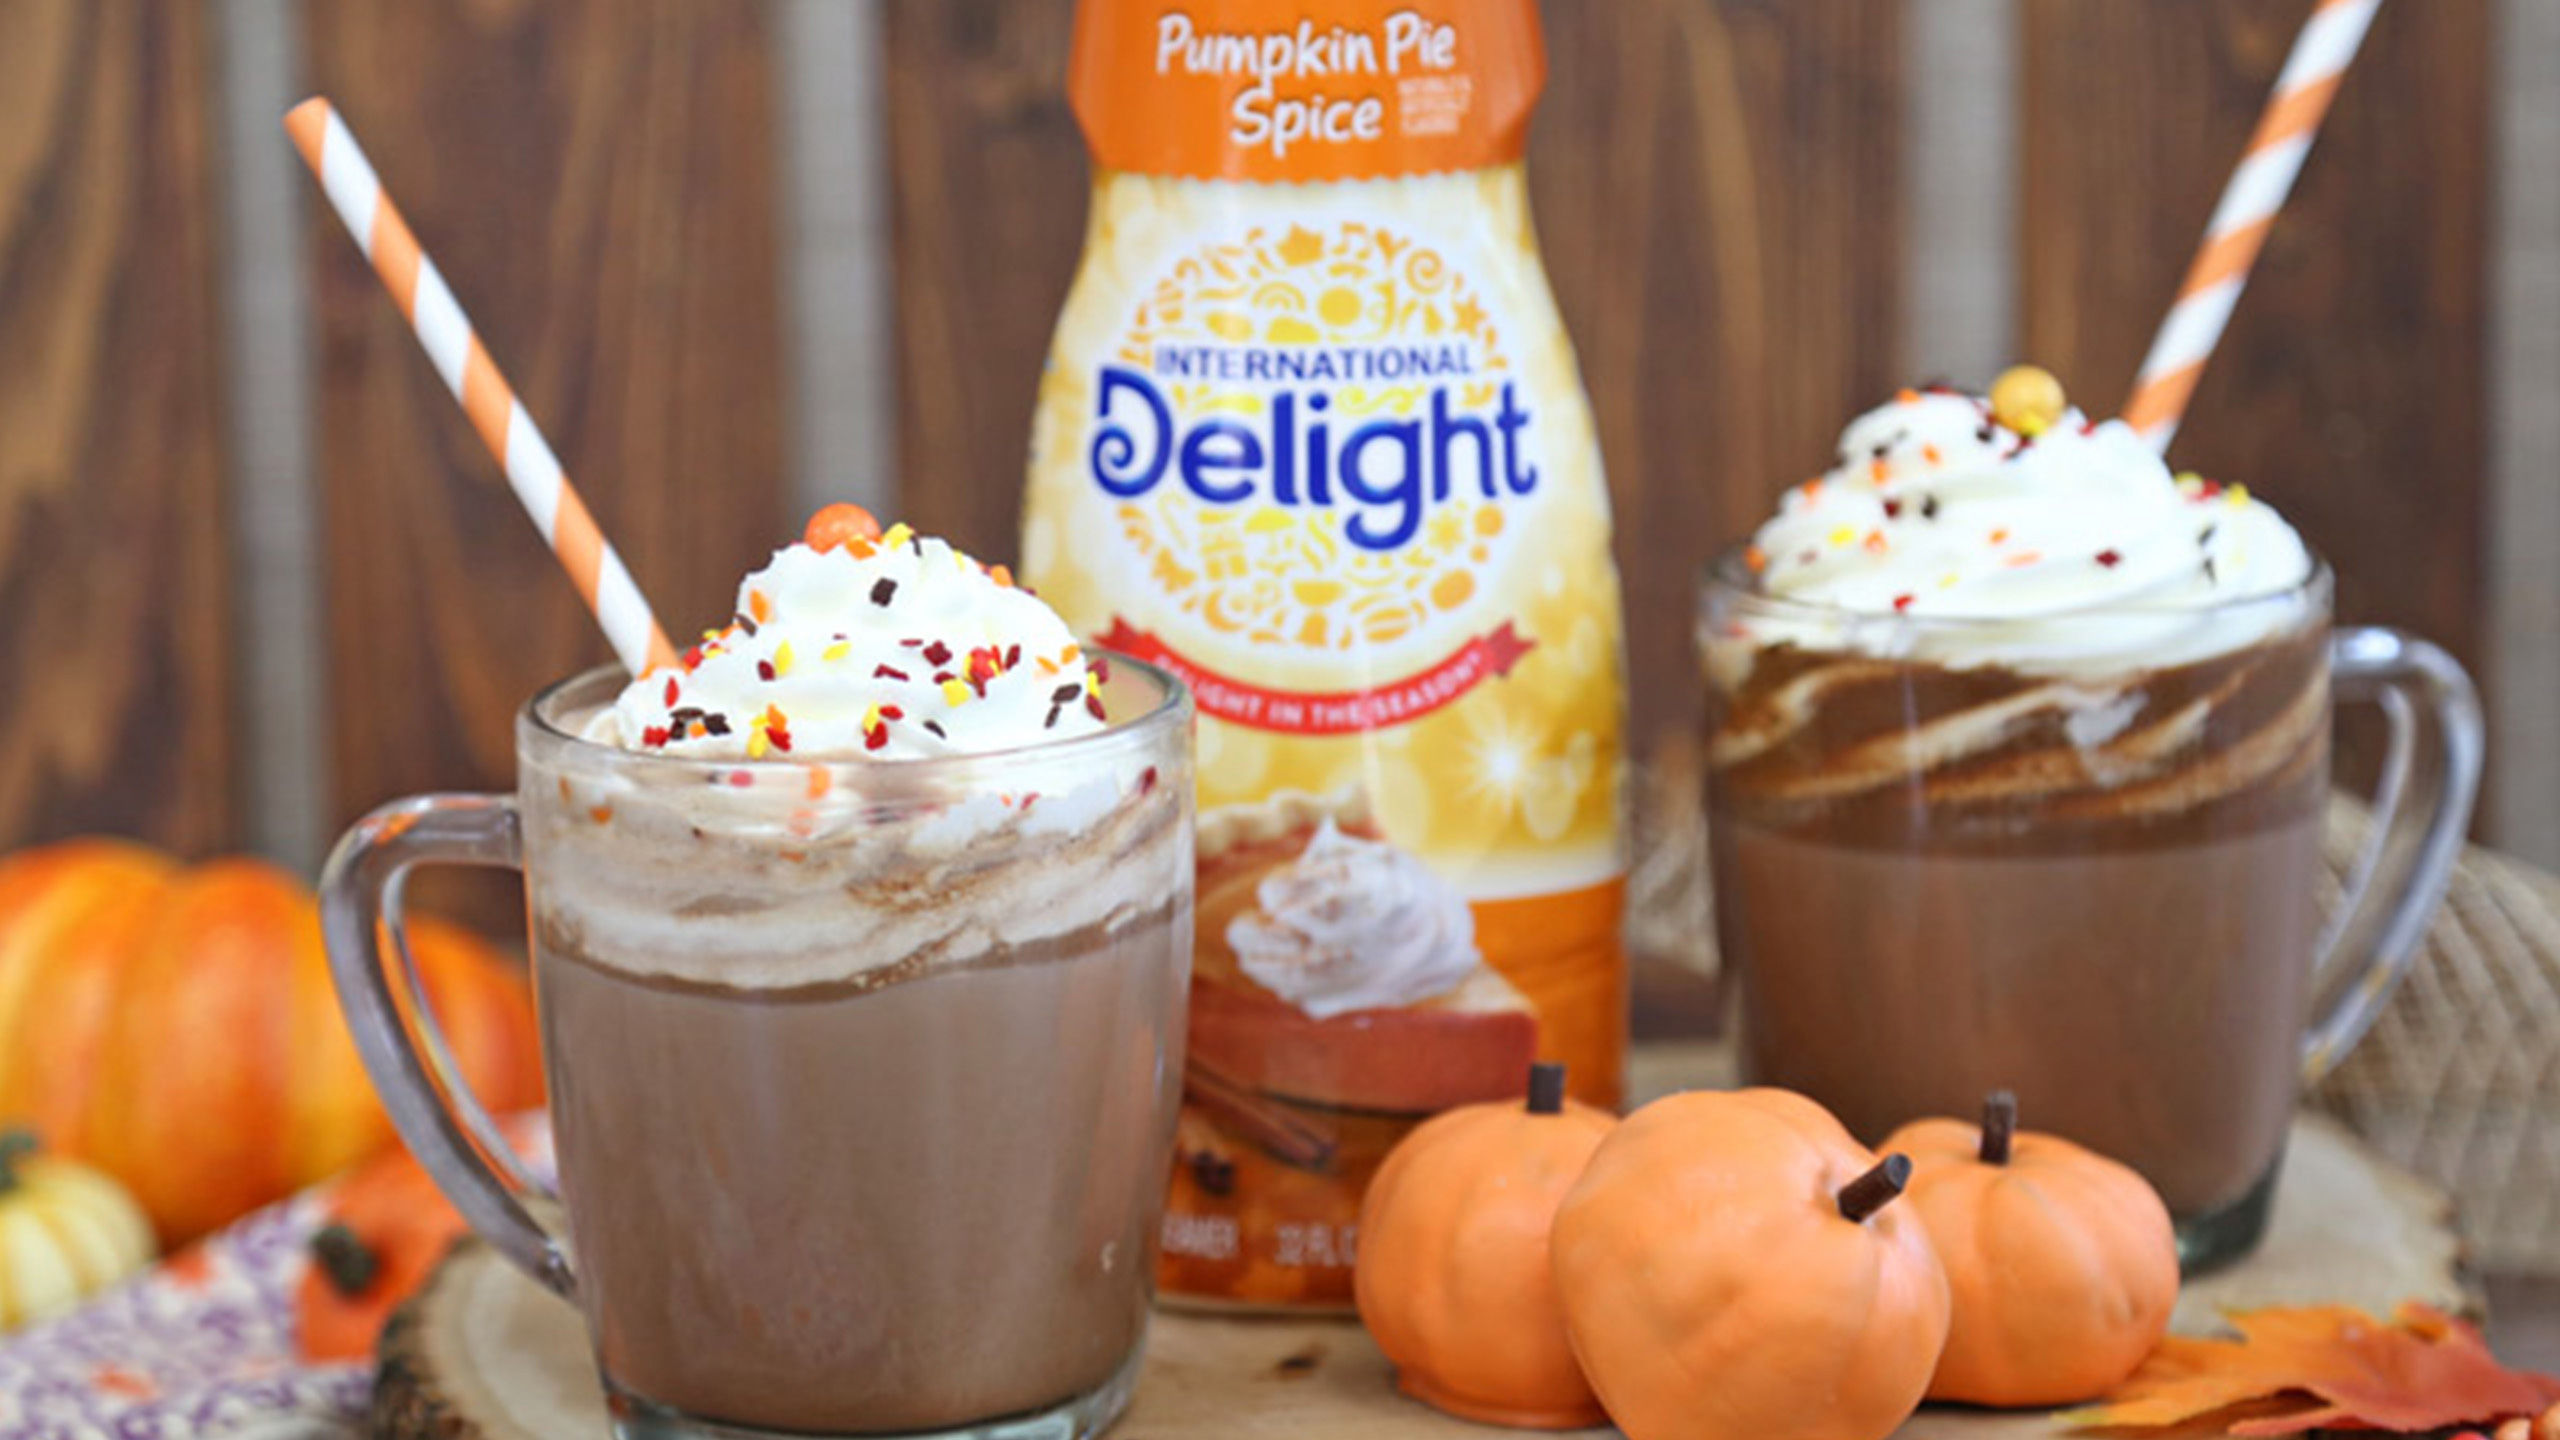 Packshot du produit International Delight saveur Pumpkin Pie Spice